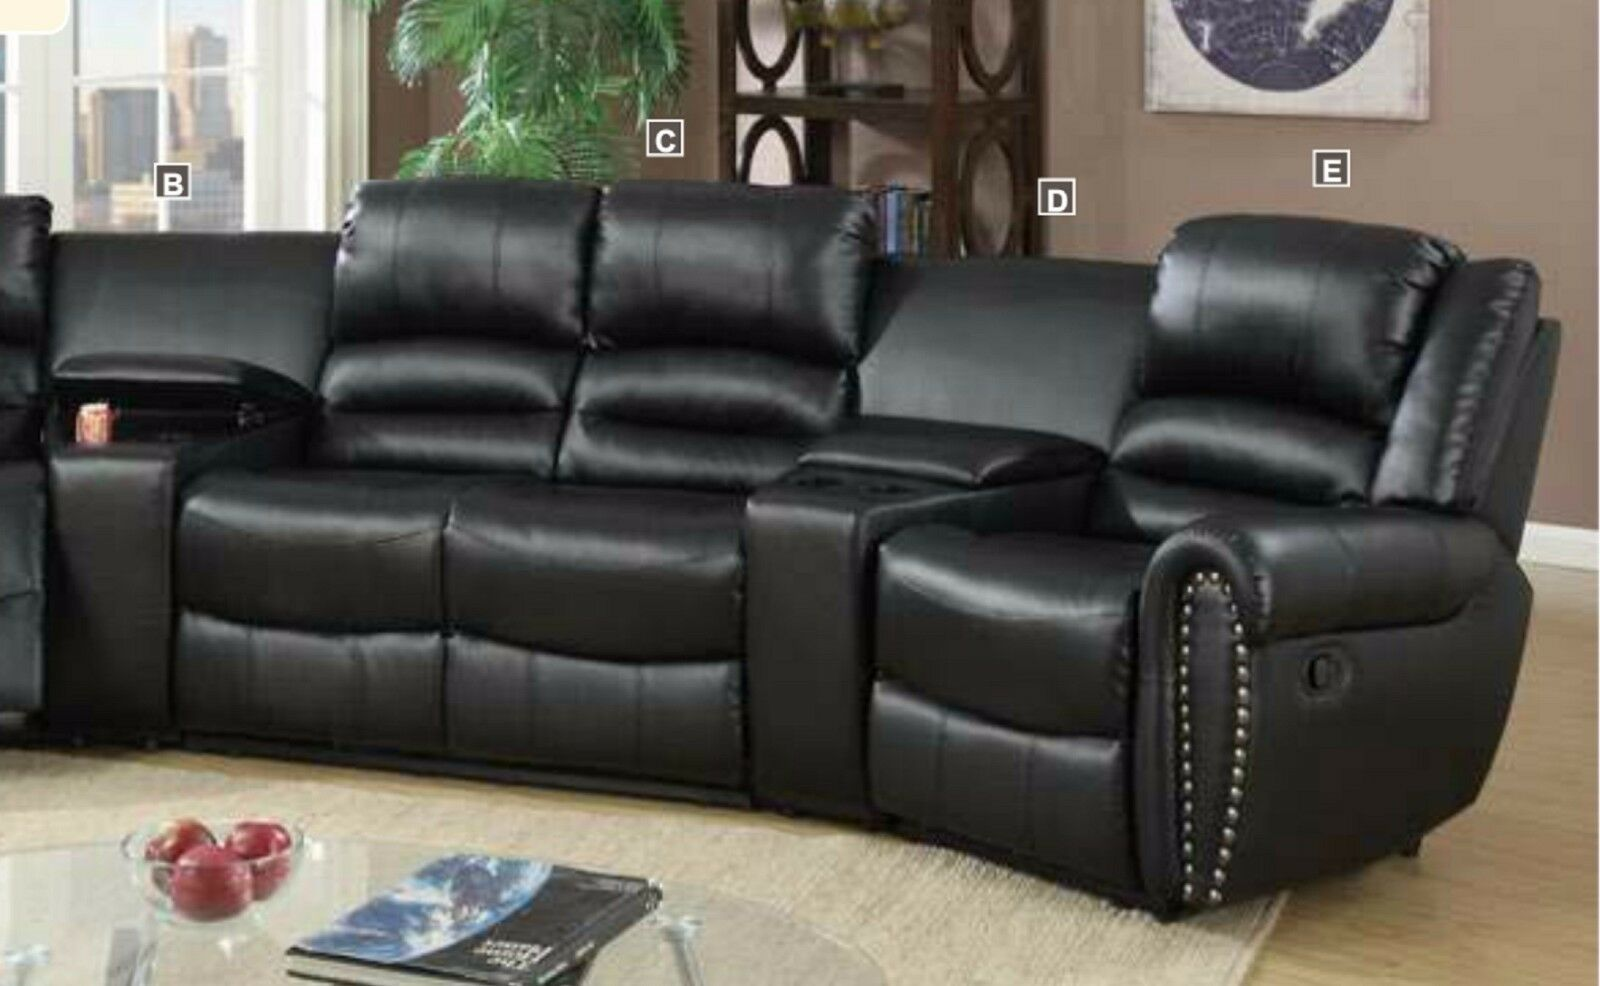 Black Bonded Leather 5pc Reclining Motion Home Theater Glider Loveseat Console 1